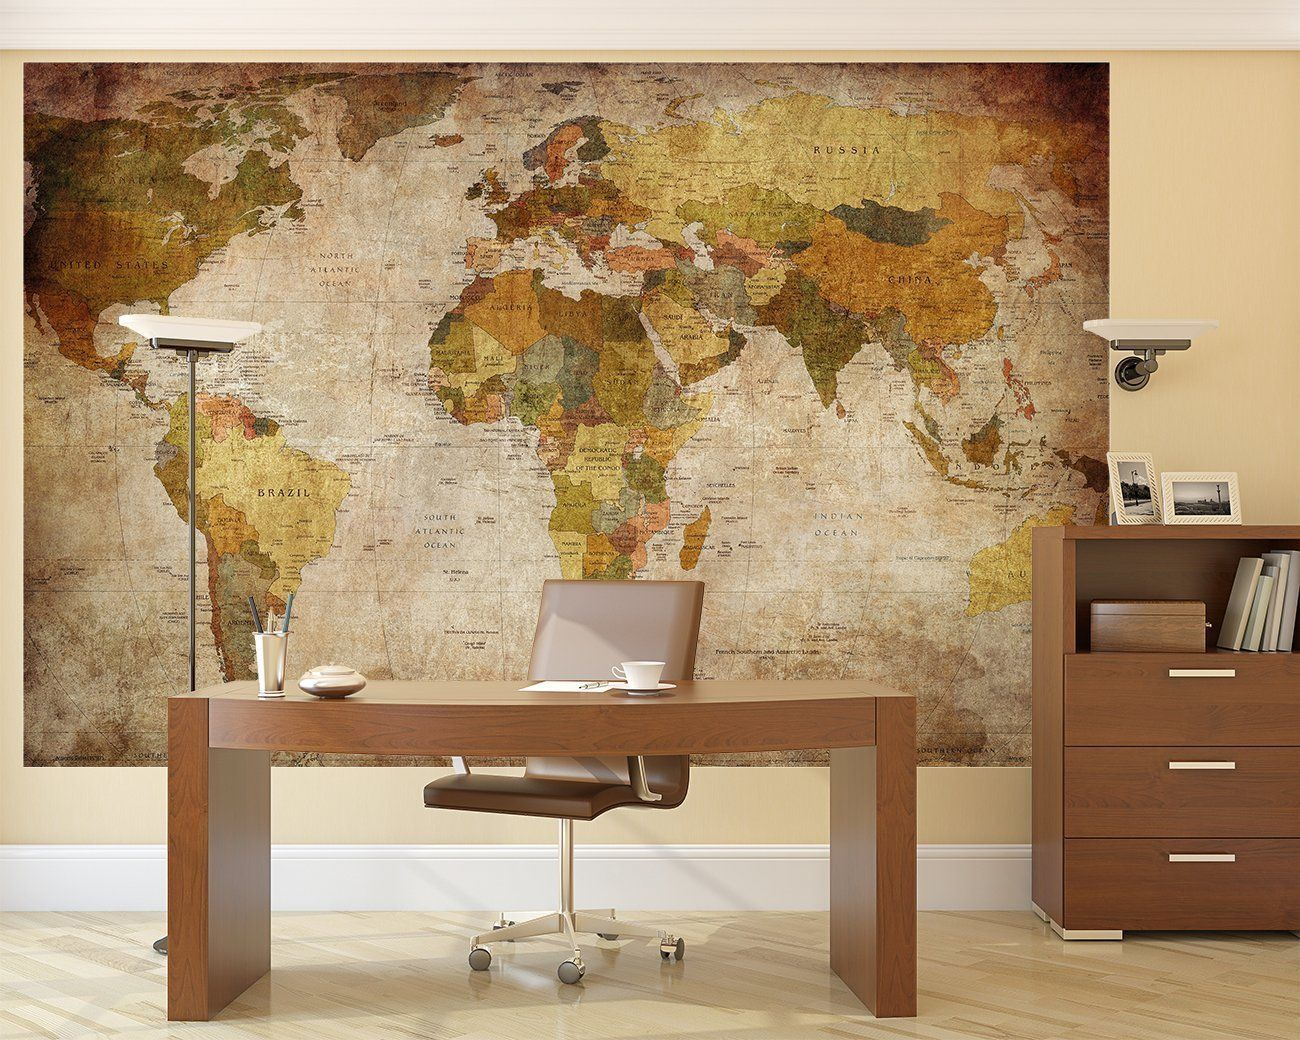 LB Prepasted Wall Mural Foto Wall Decor, World Map, 82.7 Inch  55.5 Inch